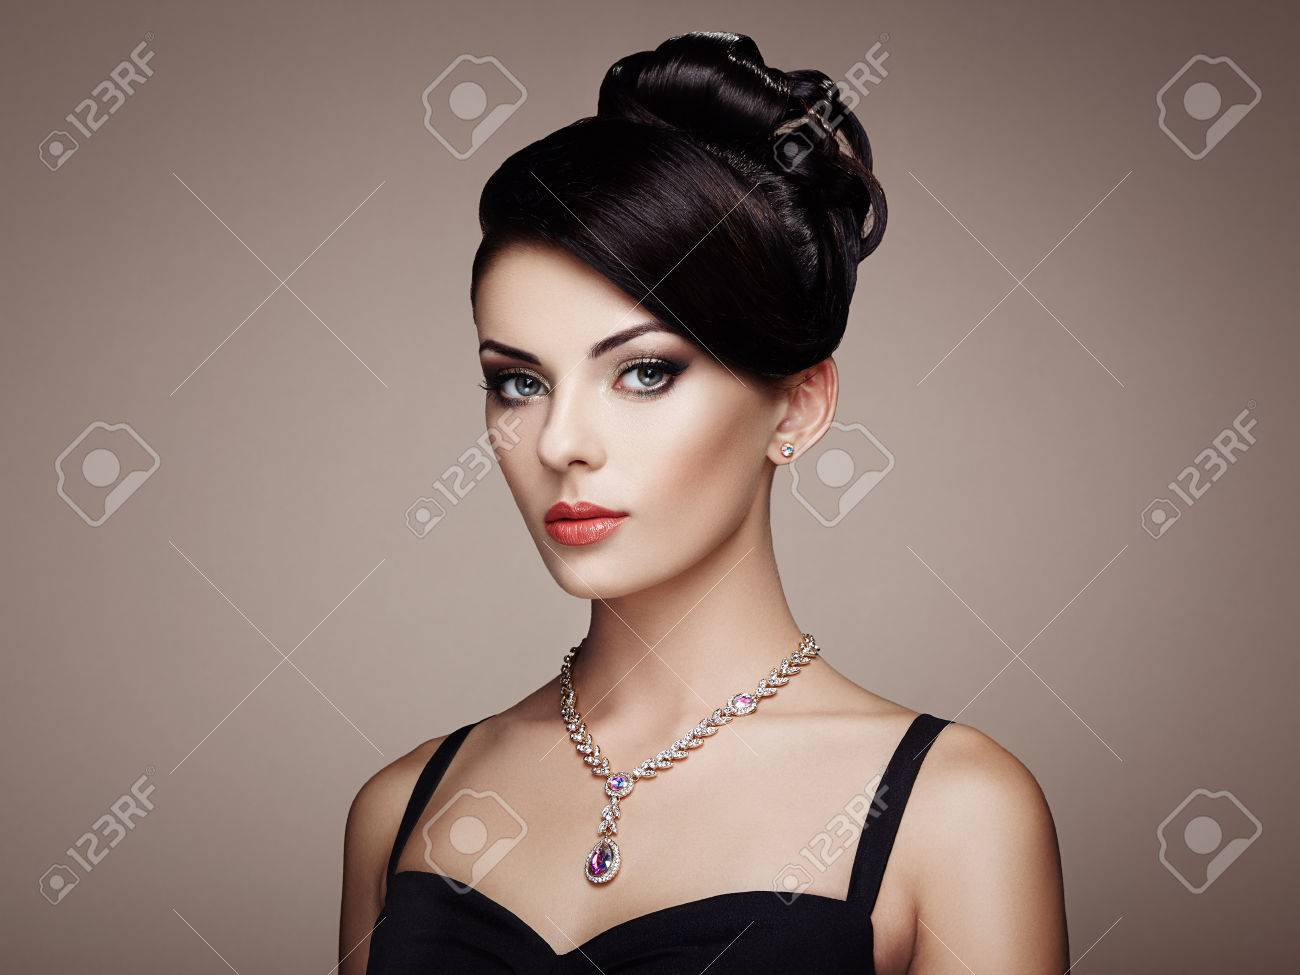 Fashion portrait of young beautiful woman with jewelry and elegant hairstyle. Brunette girl. Perfect make-up. Beauty style woman with diamond accessories - 62519855